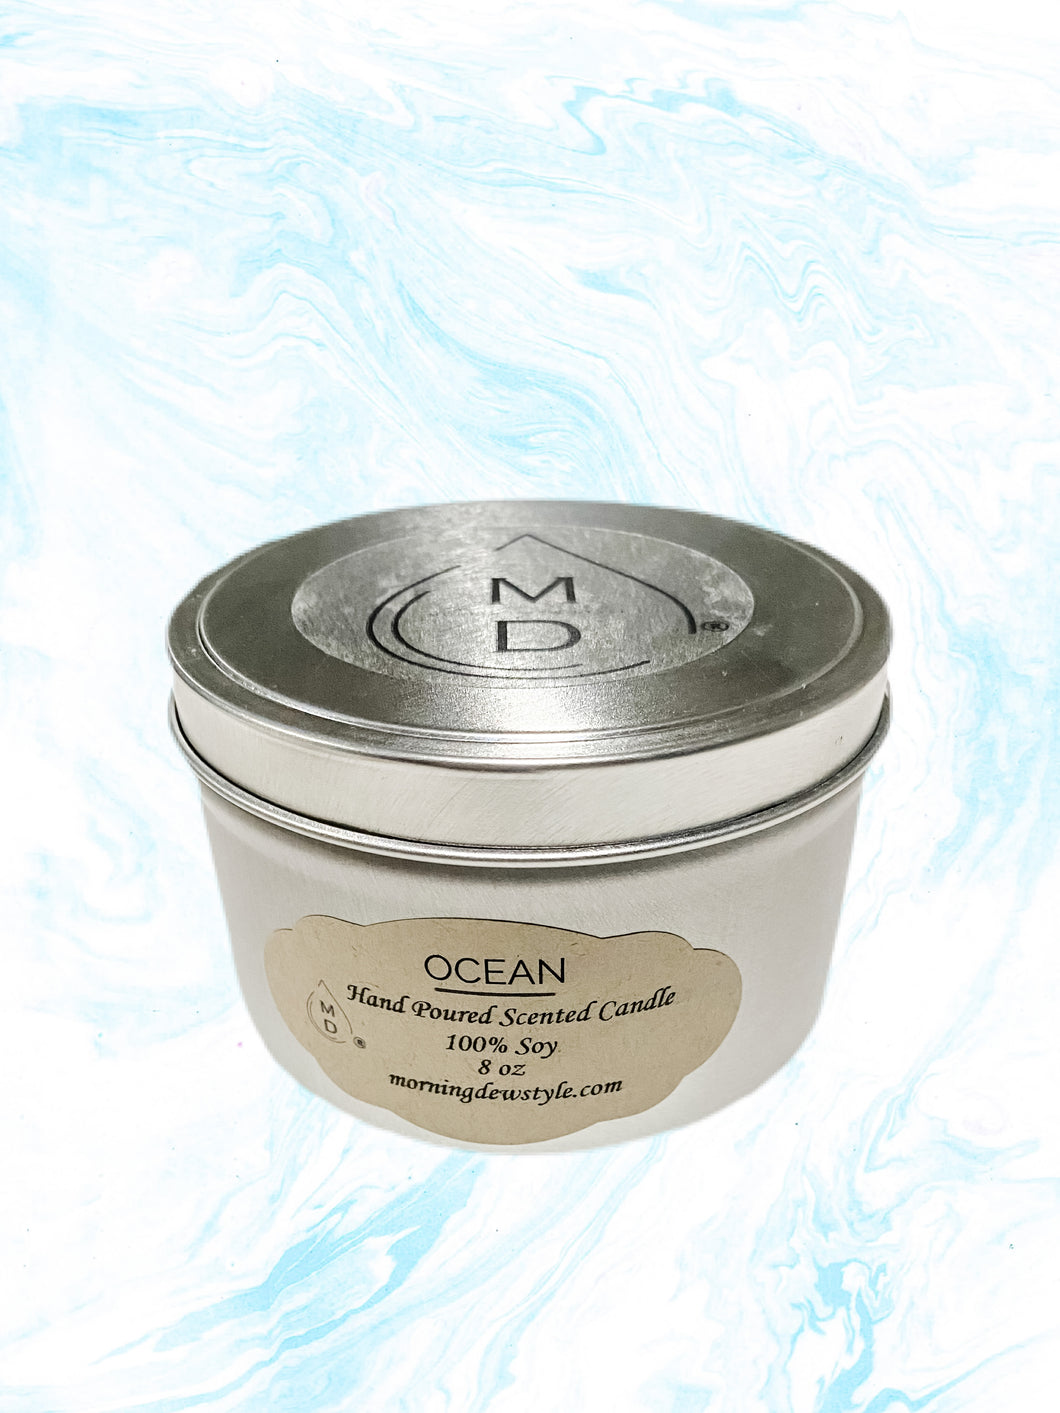 Ocean Scented Candle